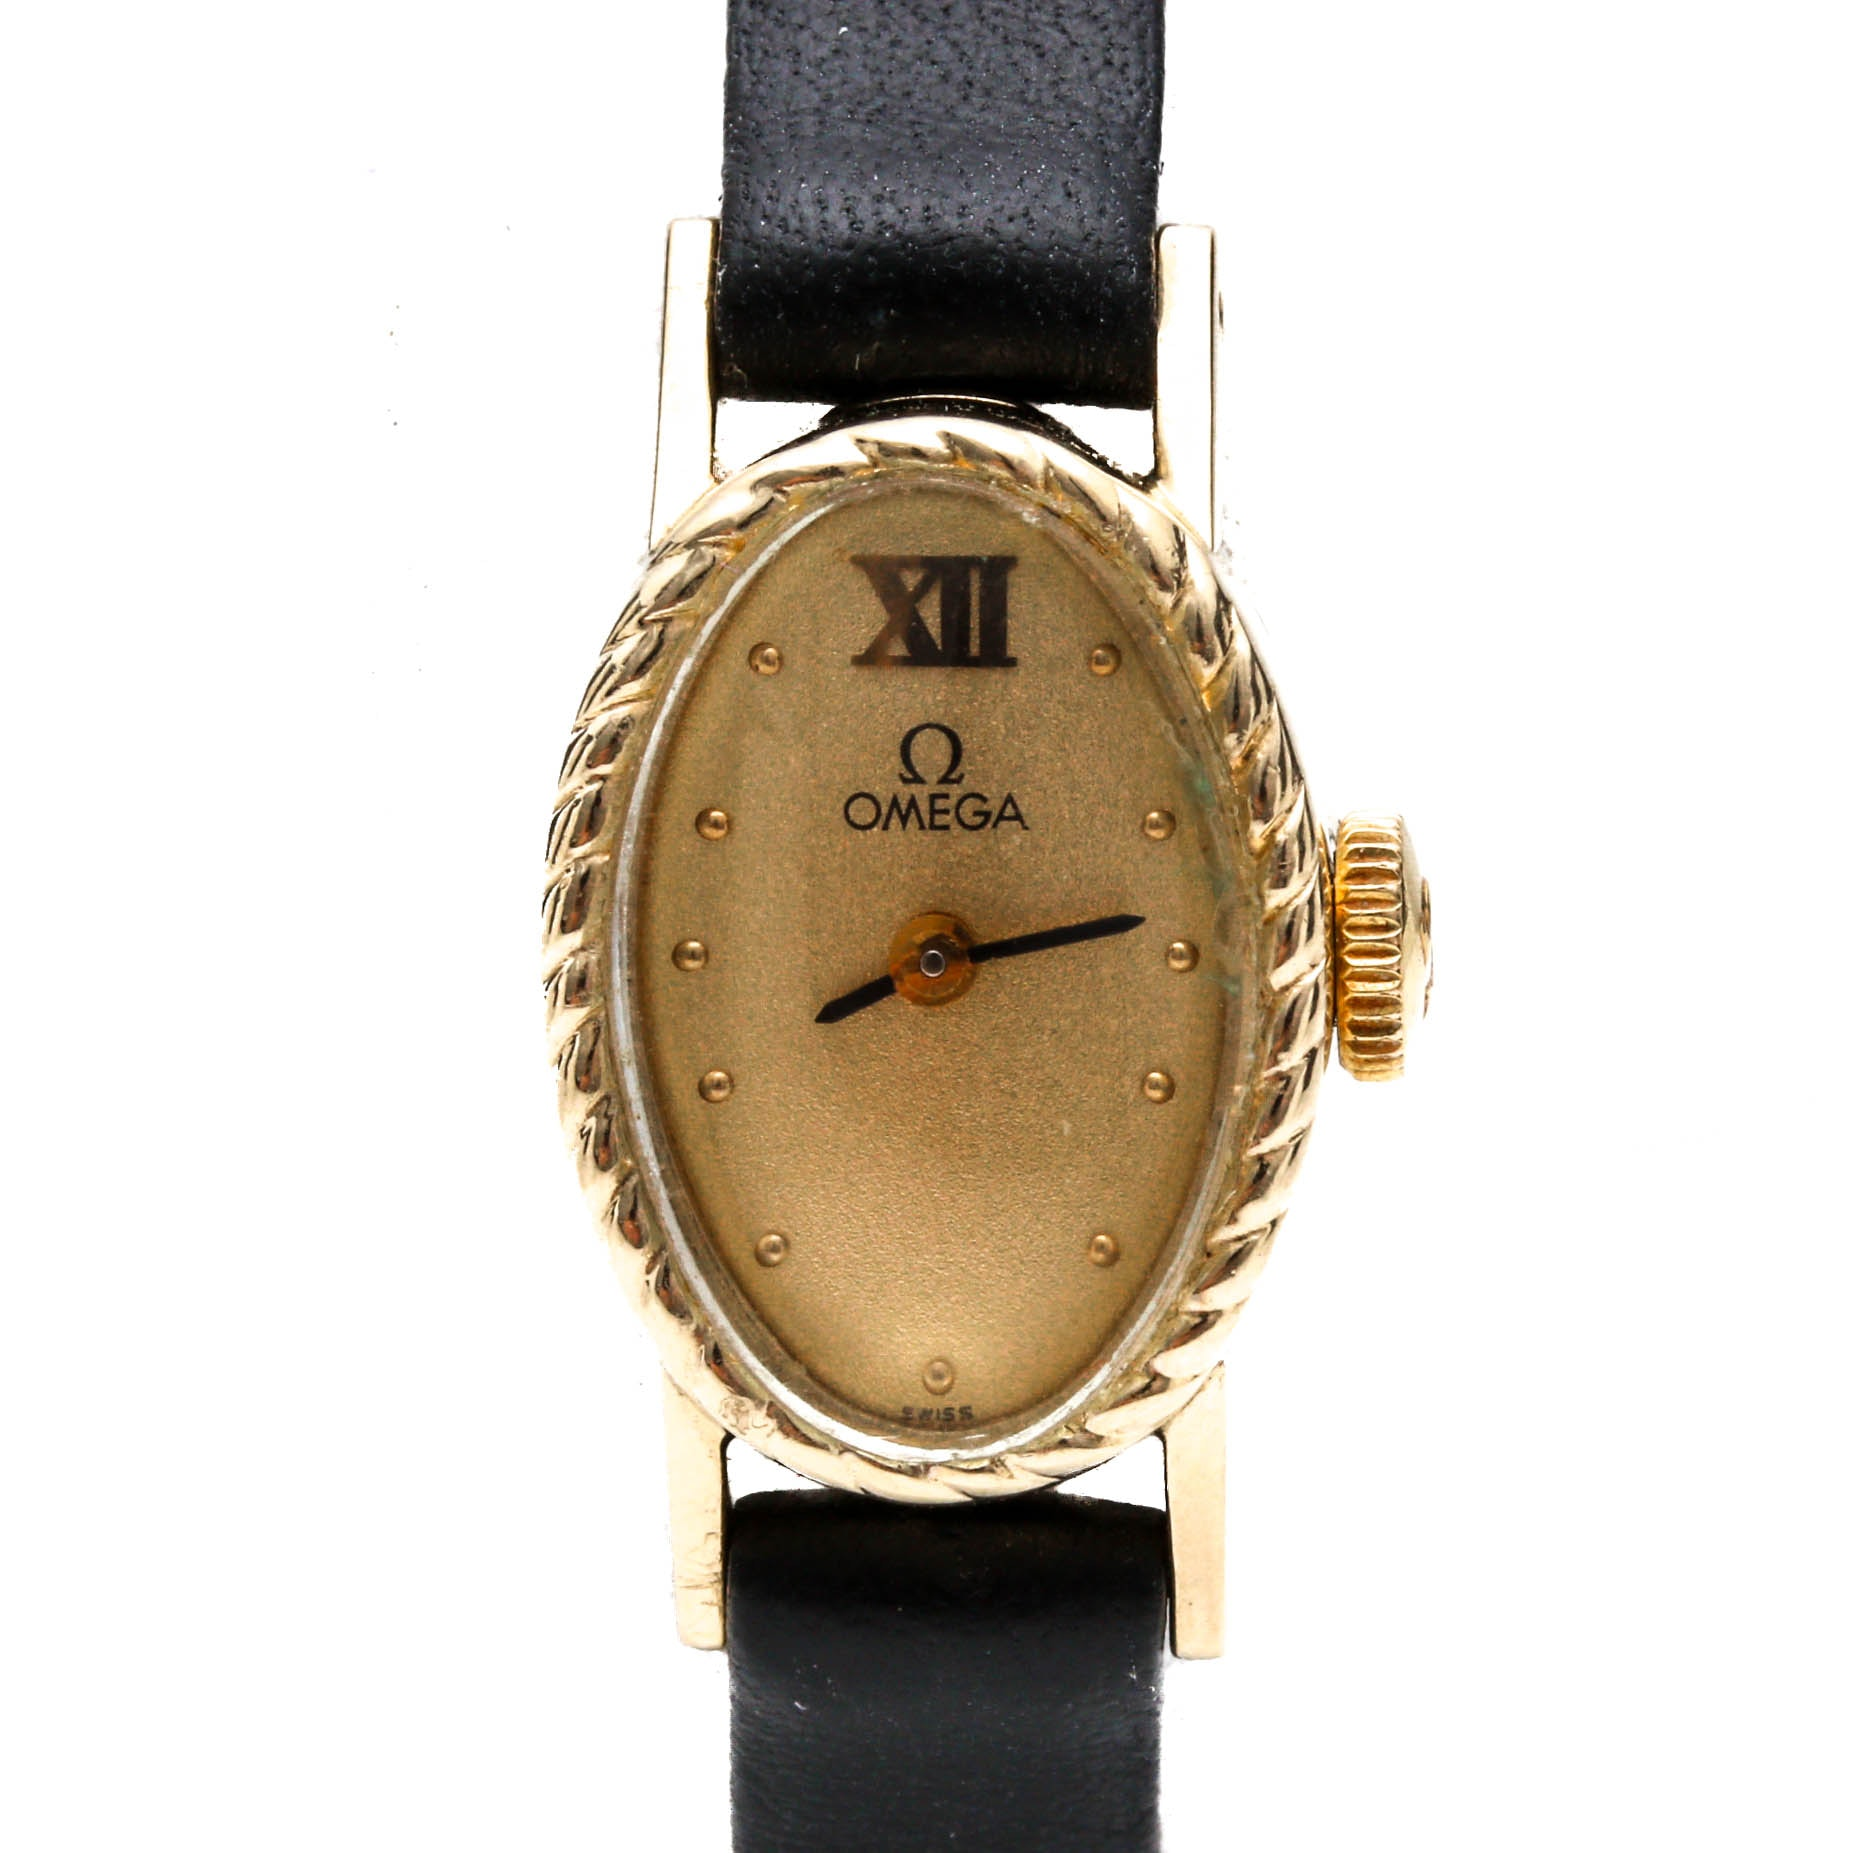 Omega 14K Yellow Gold Black Leather Strap Wristwatch